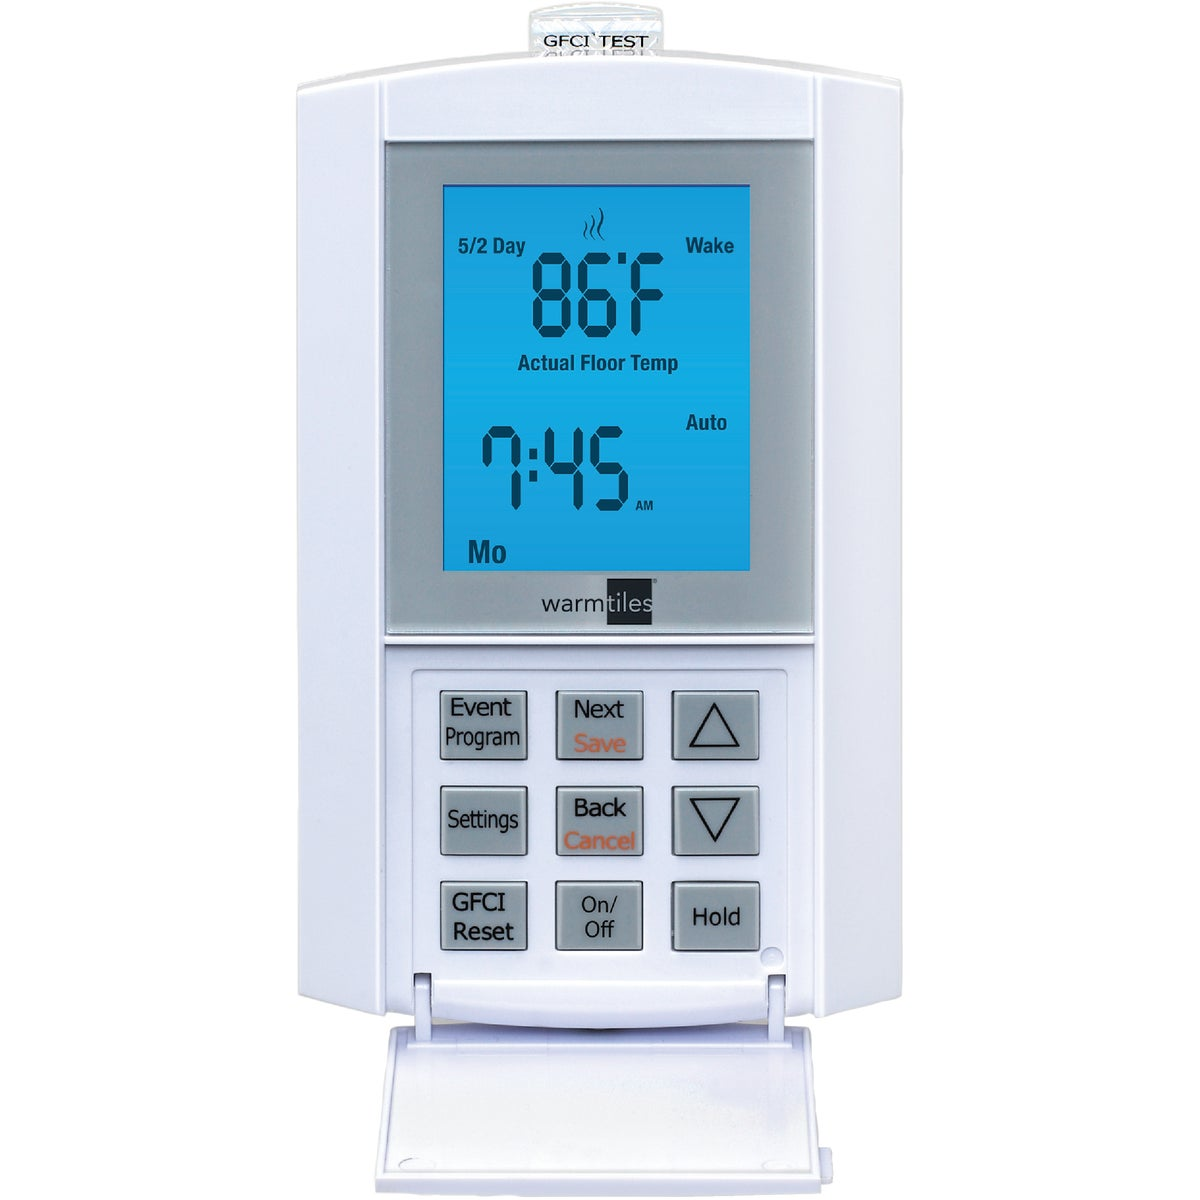 PROGRAMMABLE THERMOSTAT - GTS1 by Easy Heat Inc